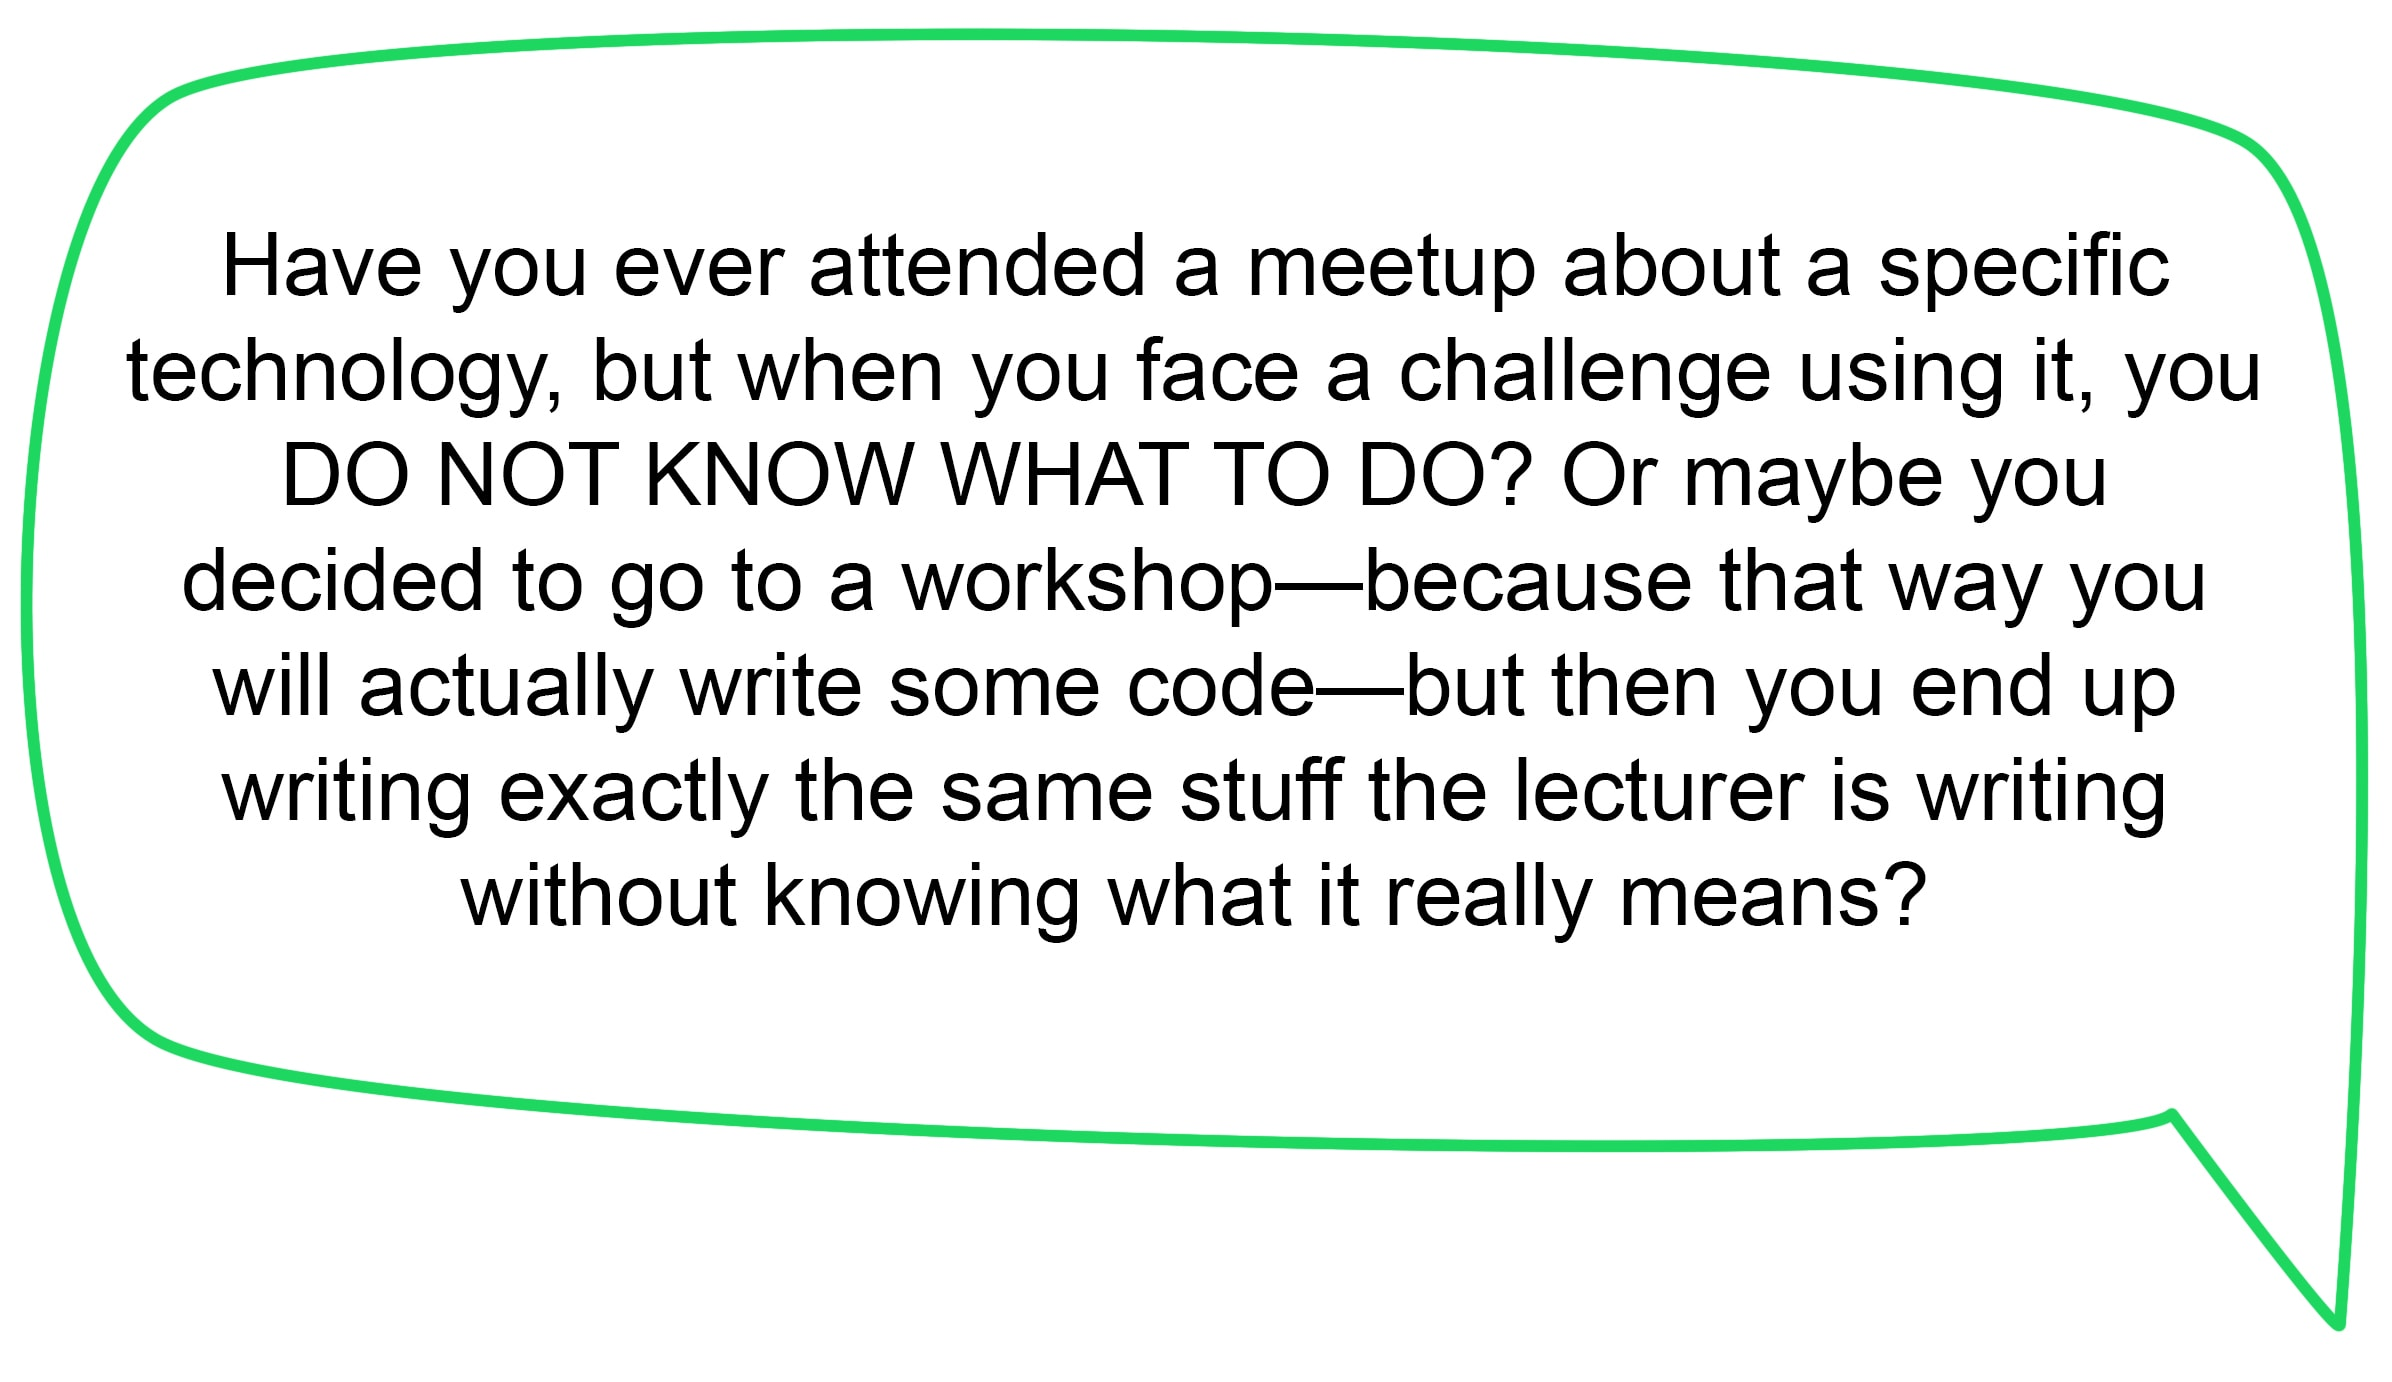 How to Make the Most of Tech Conferences and Meetups